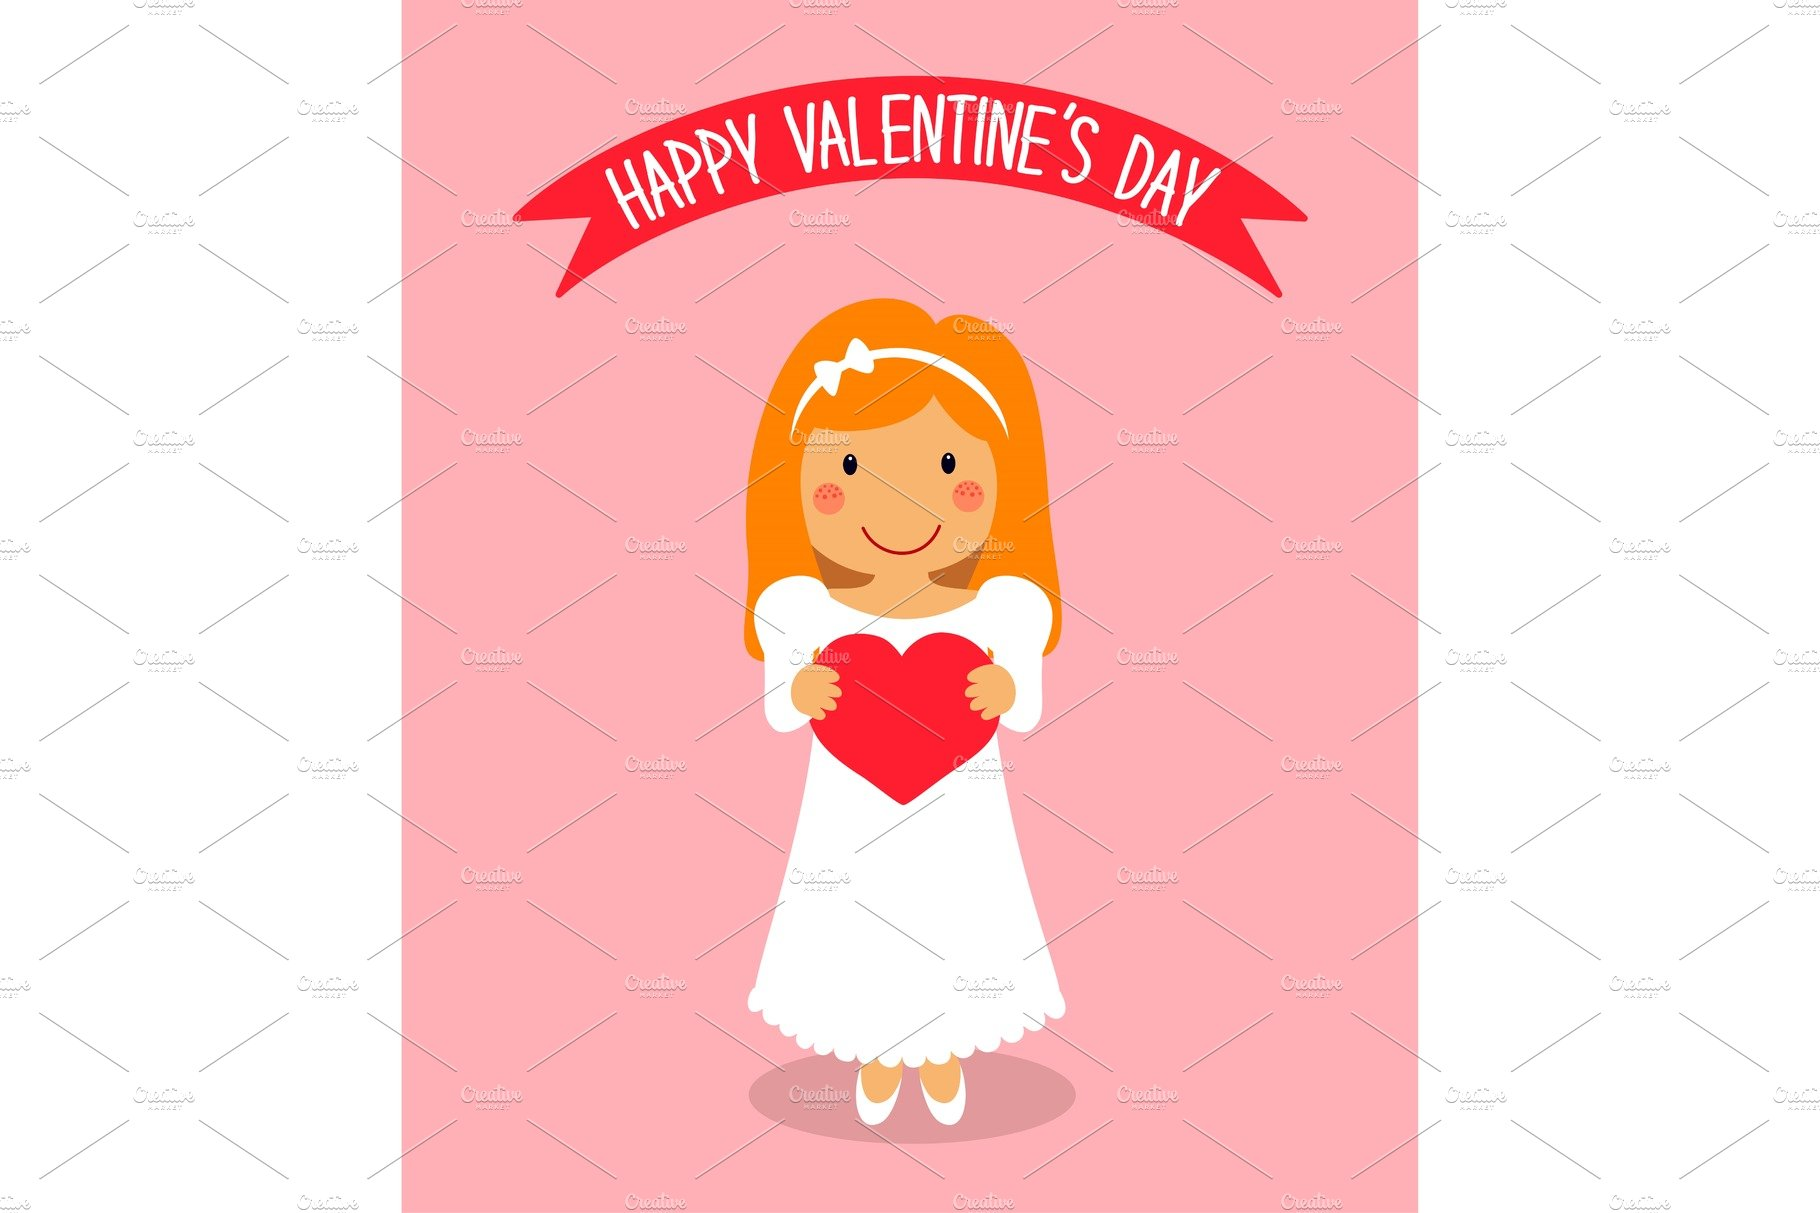 Cartoon Characters Valentines Day : Cute valentine s day card with funny cartoon character of